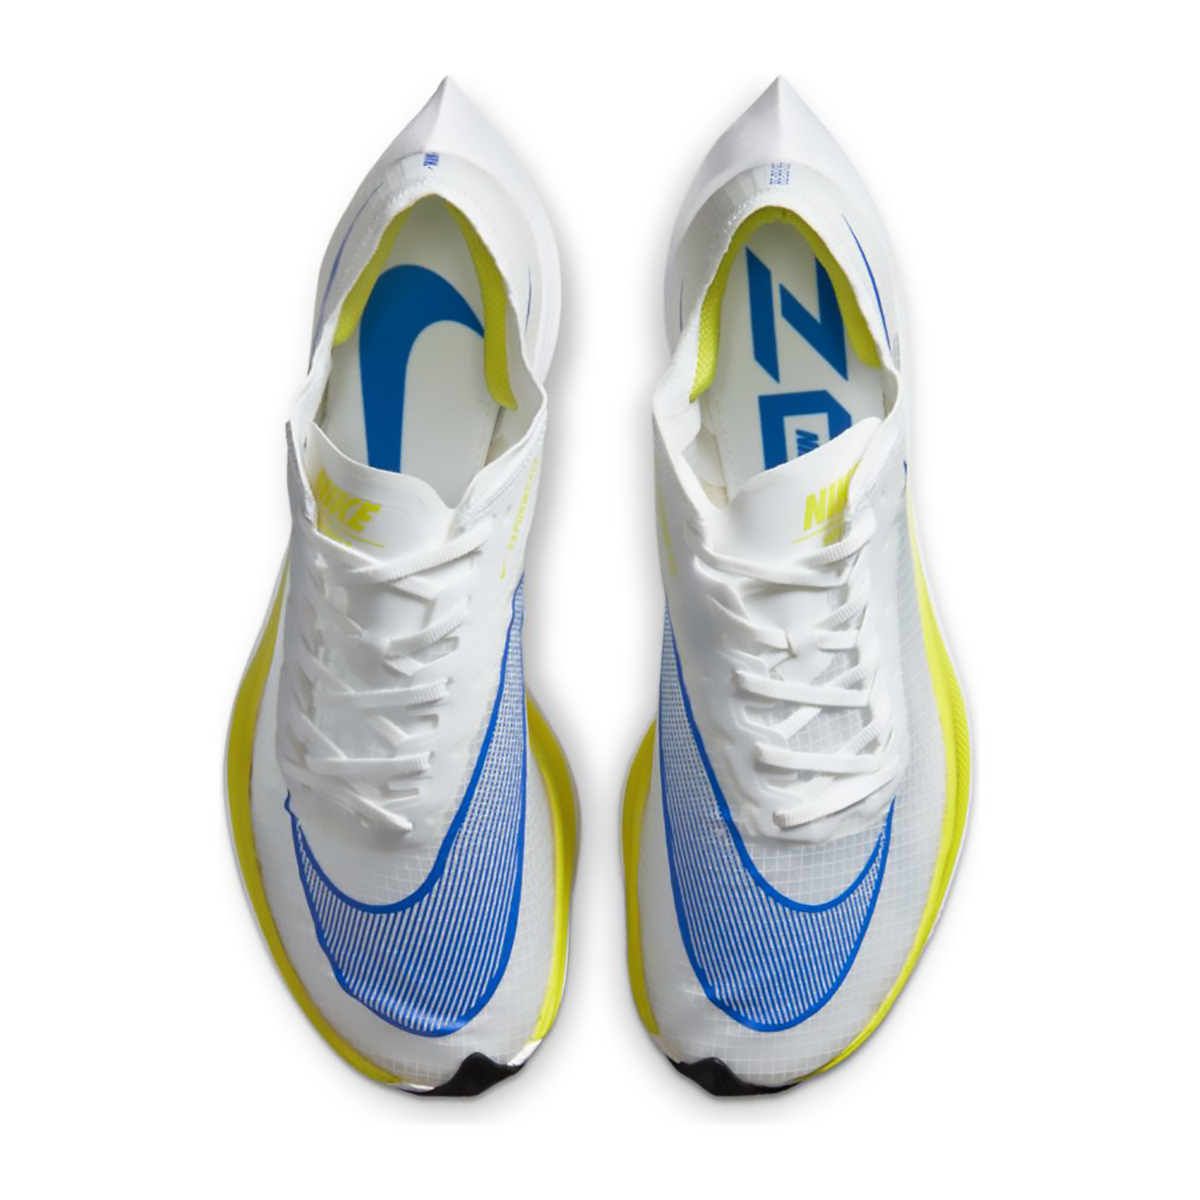 Nike ZoomX Vaporfly NEXT% Running Shoe - Color: White/Racer Blue/Cyber/Black - Size: M5/W6.5 - Width: Regular, White/Racer Blue/Cyber/Black, large, image 3